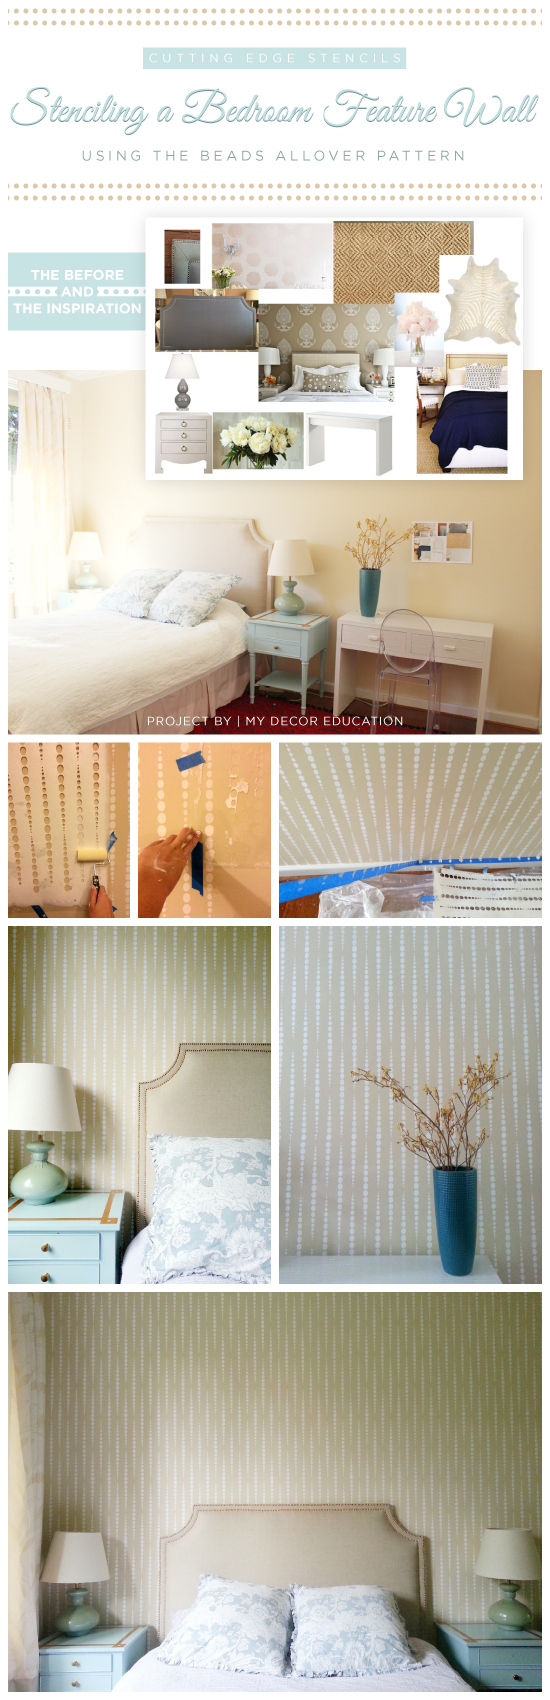 Cutting Edge Stencils shares a DIY stenciled bedroom using the Beads Allover pattern. http://www.cuttingedgestencils.com/beads-wall-stencil-pattern.html